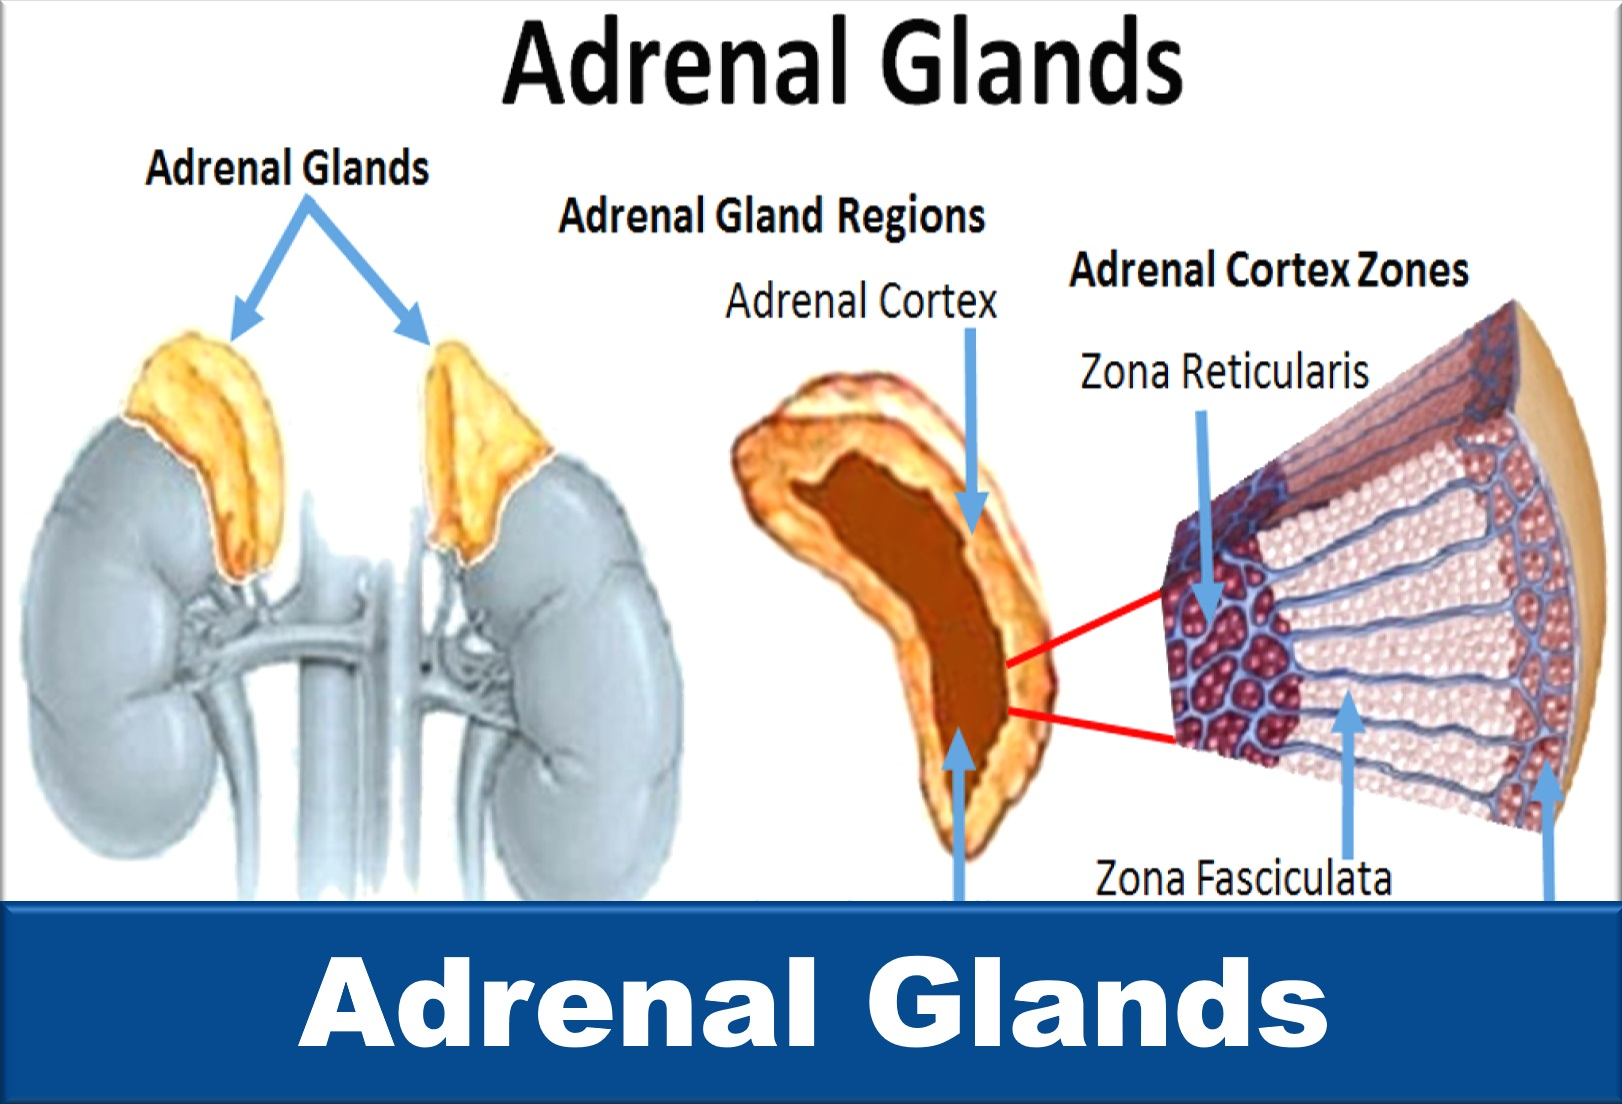 Learn about your adrenal glands